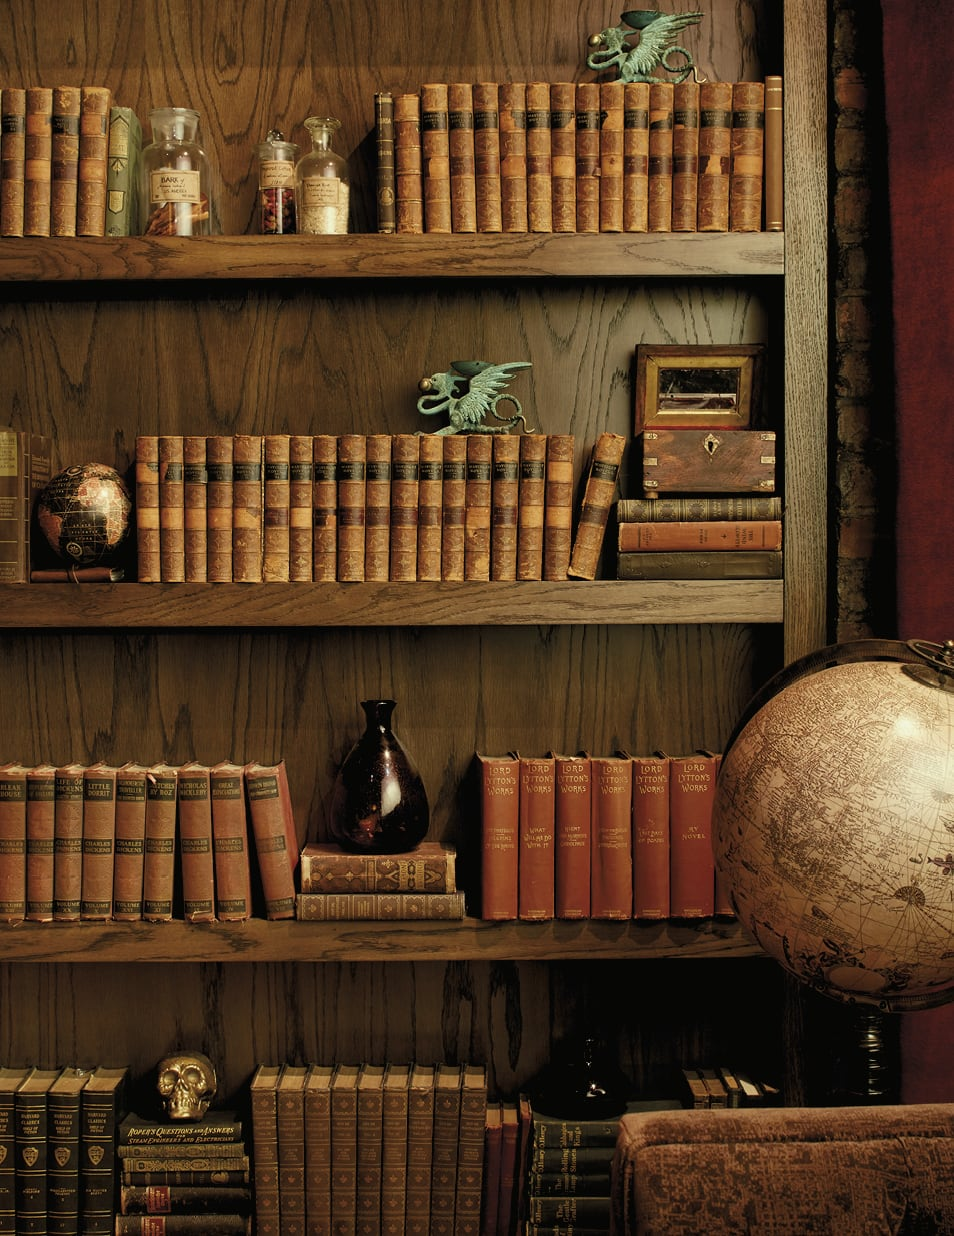 Bookshelf with interesting books and sculptures